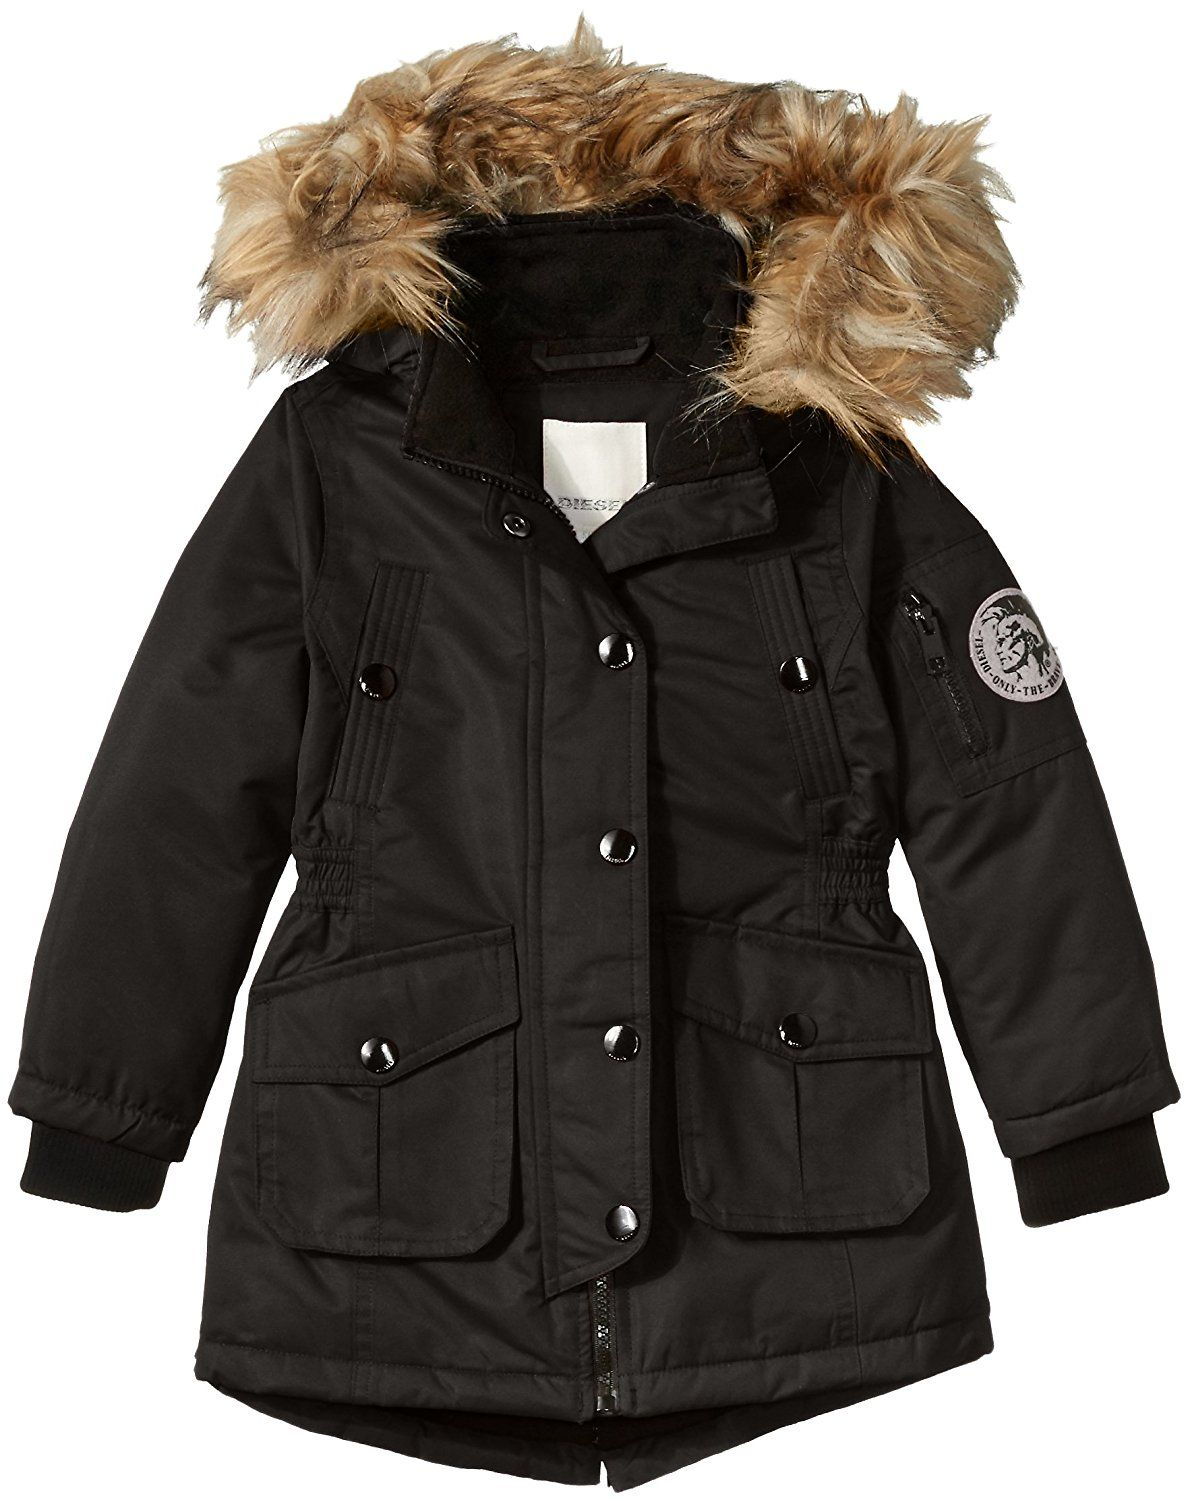 520af4dae4d4 Amazon.com  Diesel Girls  Hooded Parka  Clothing